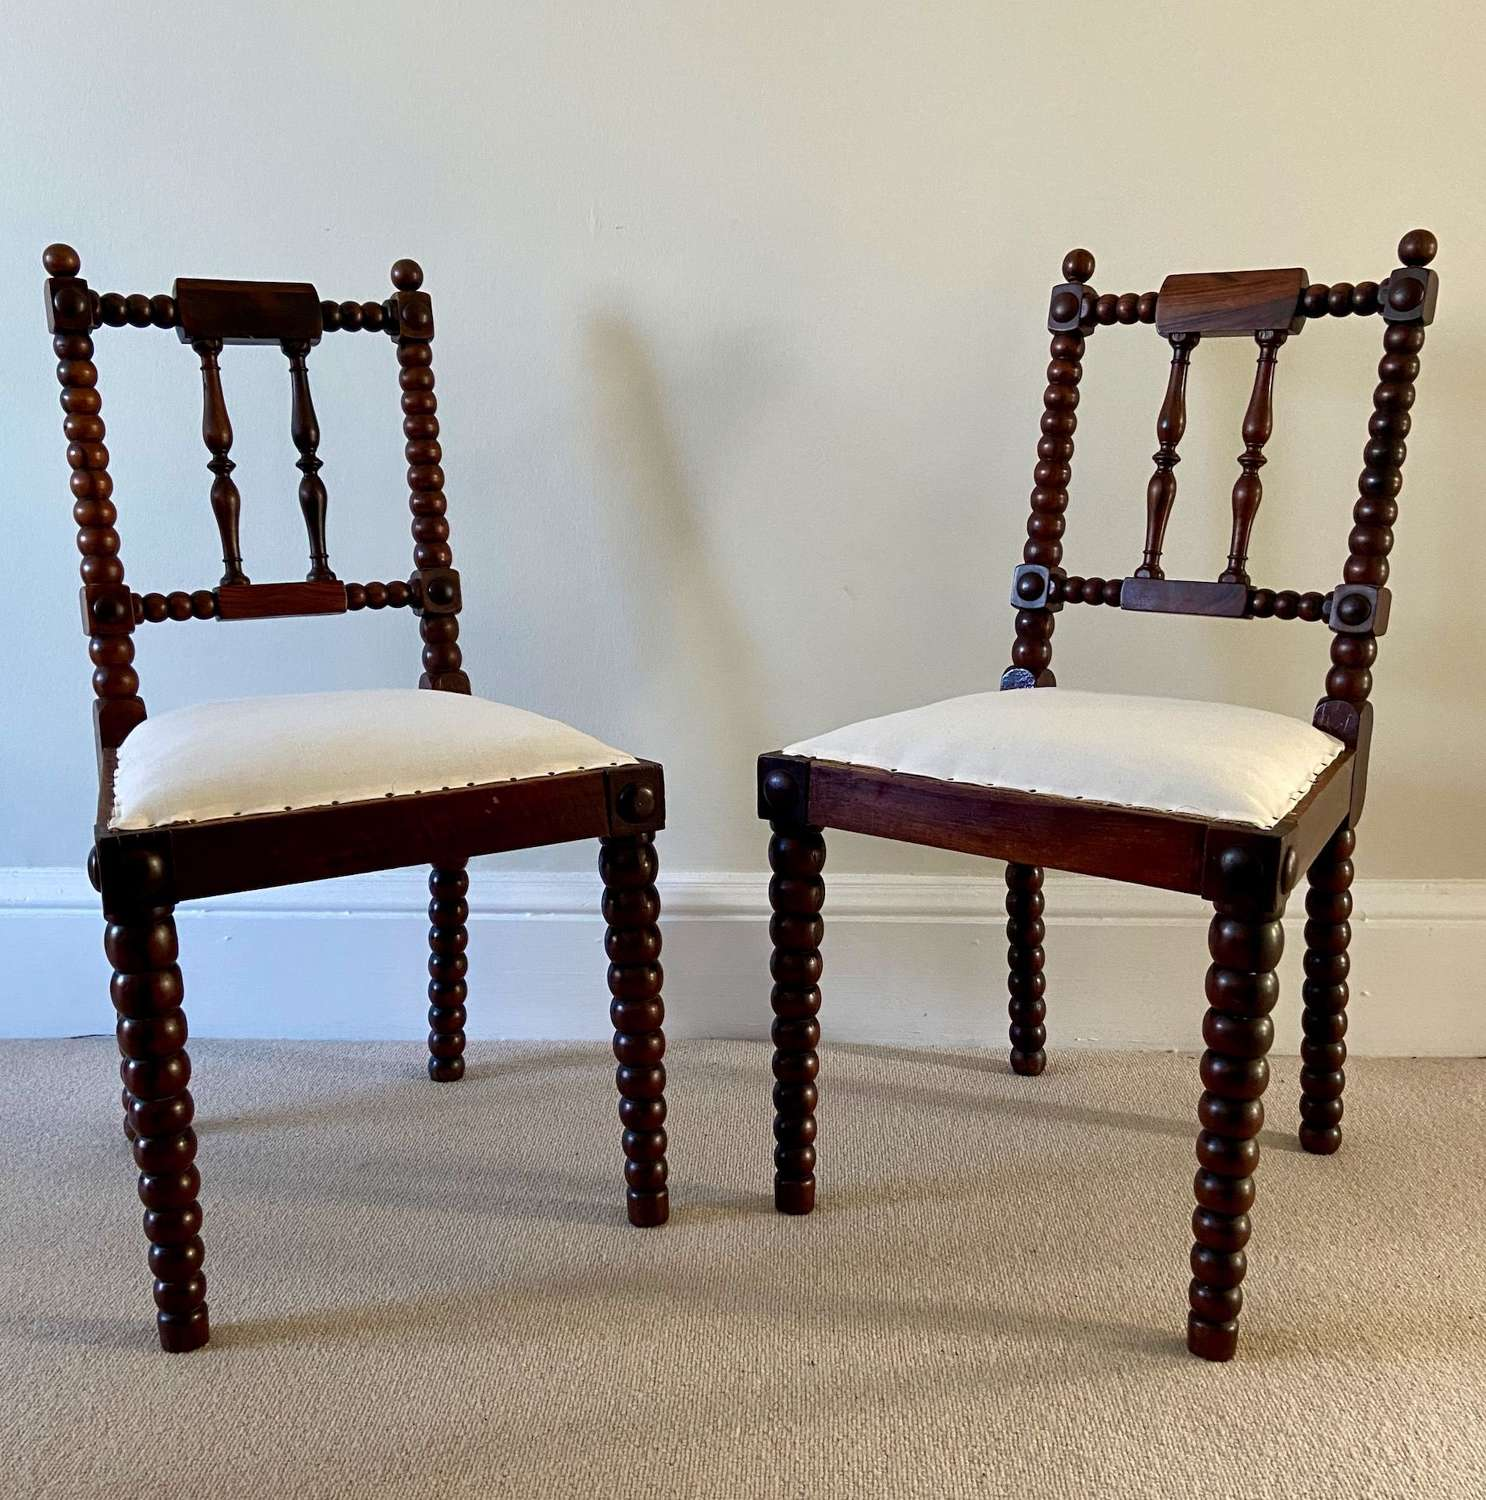 A Pair of Victorian Rosewood Bobbin Chairs